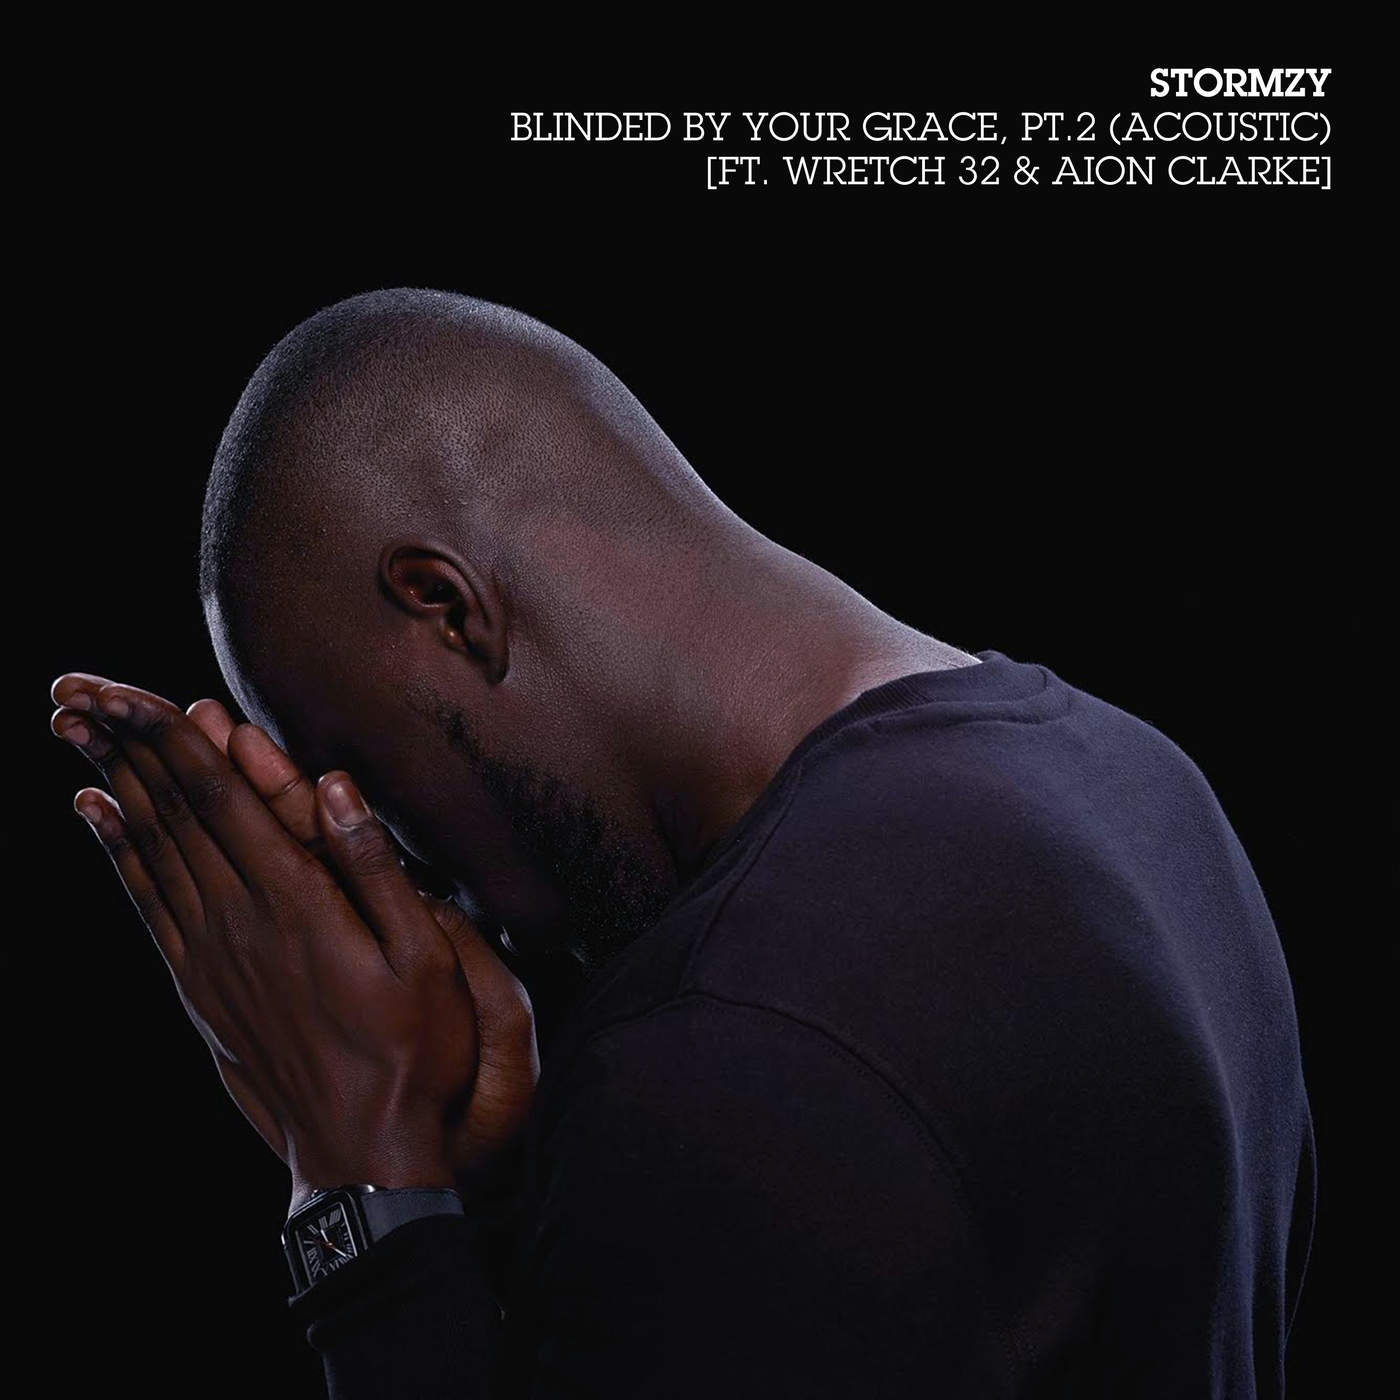 Blinded By Your Grace Pt. 2 Acoustic feat. Wretch 32  - Download Stormzy – Blinded By Your Grace, Pt. 2 (Acoustic) (ft. Wretch 32 & Aion Clarke)